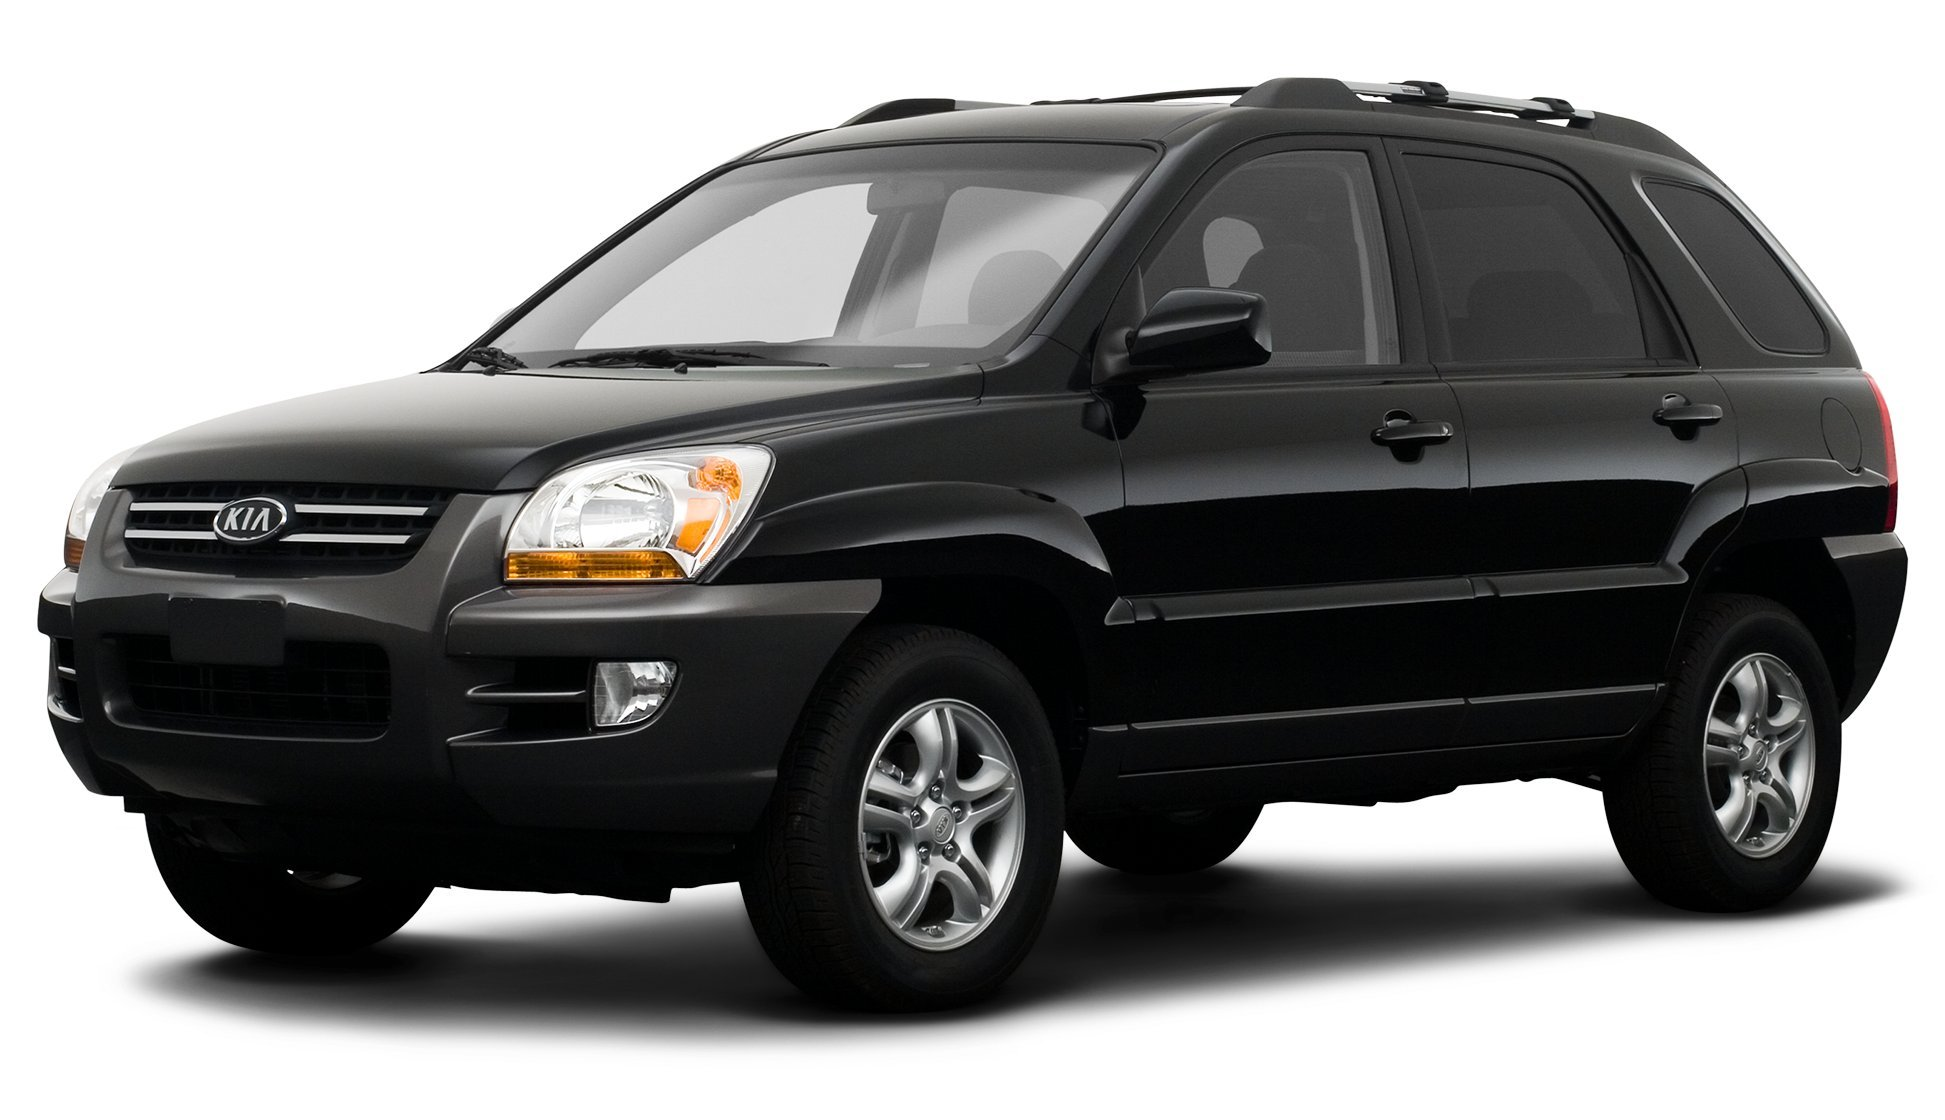 2008 kia sportage reviews images and specs vehicles. Black Bedroom Furniture Sets. Home Design Ideas